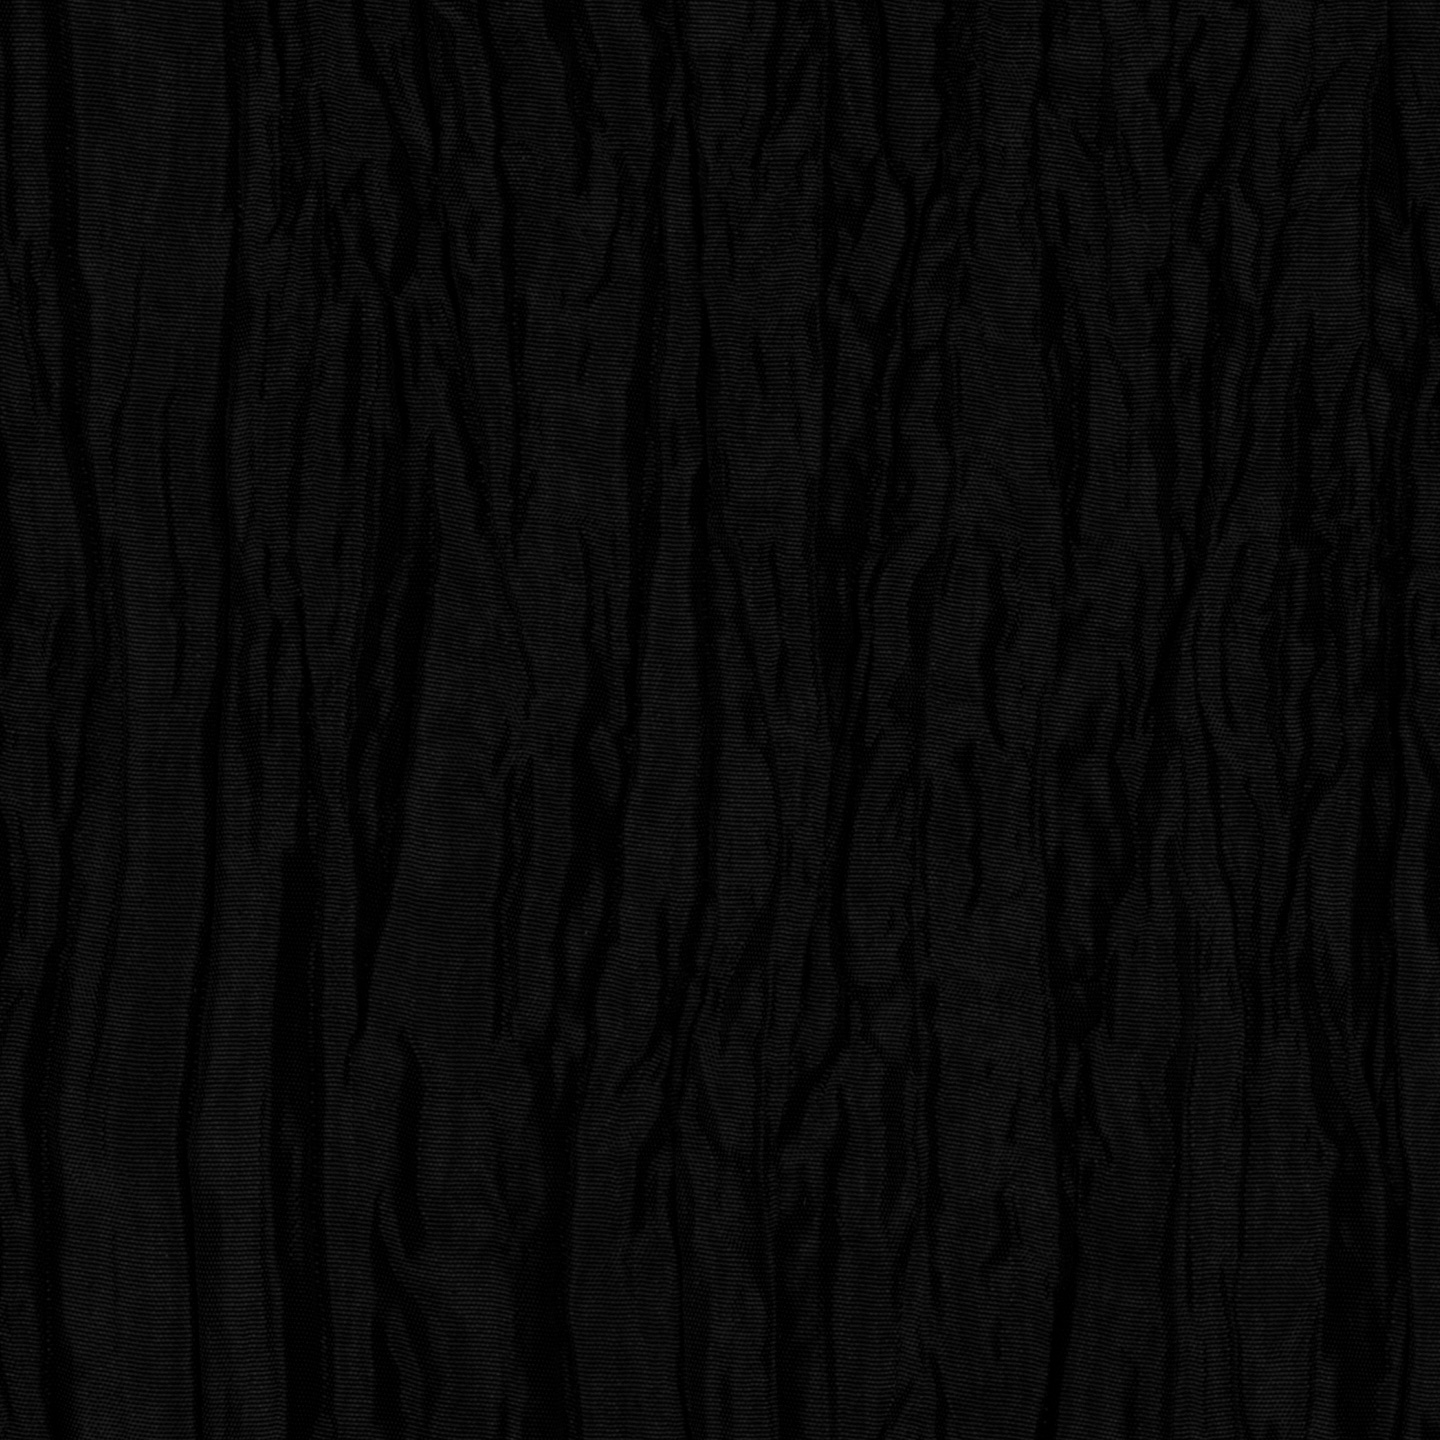 Crushed Taffeta Black Fabric